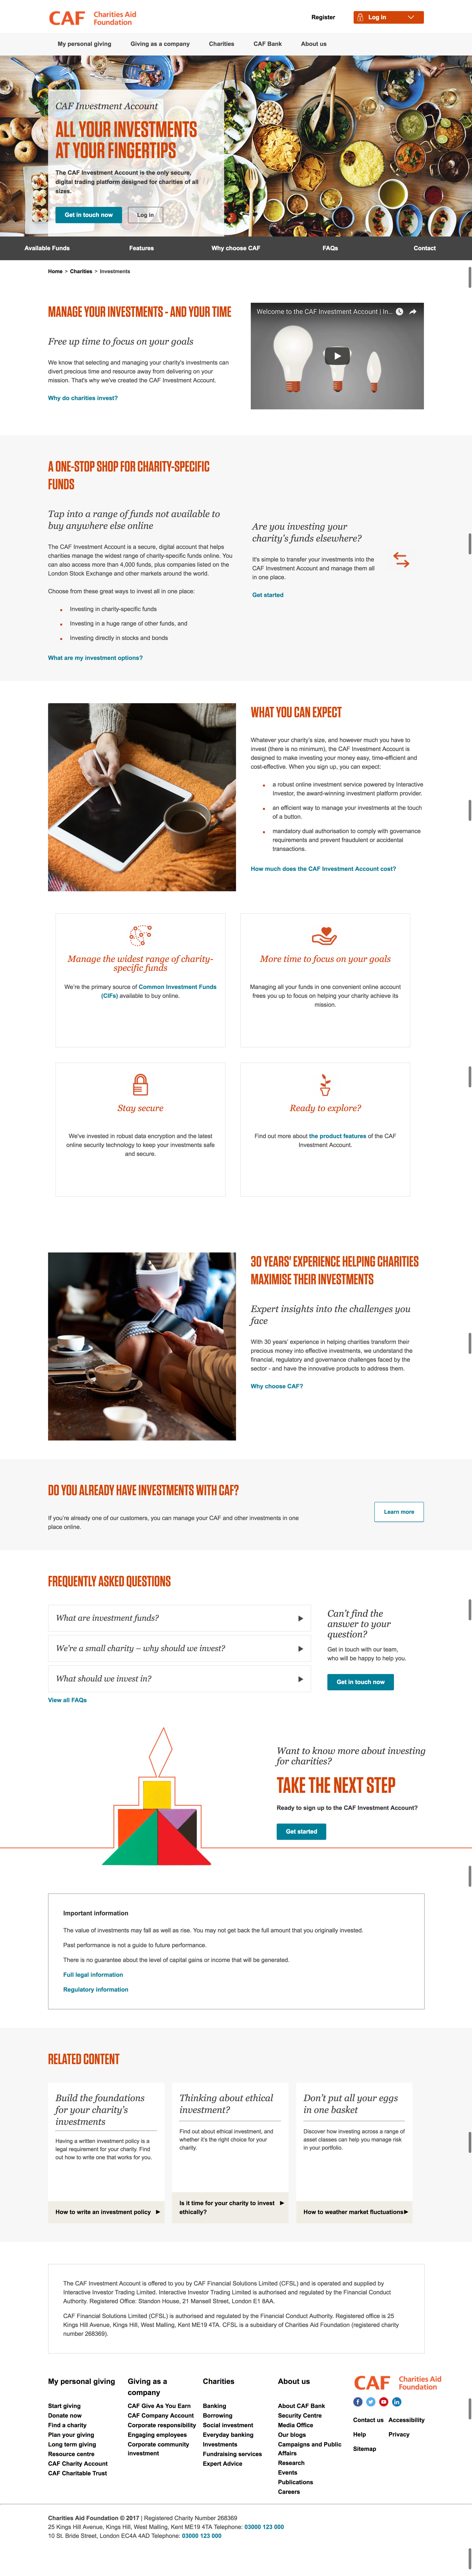 Marketing a platform for charity investment with  Charities Aid Foundation